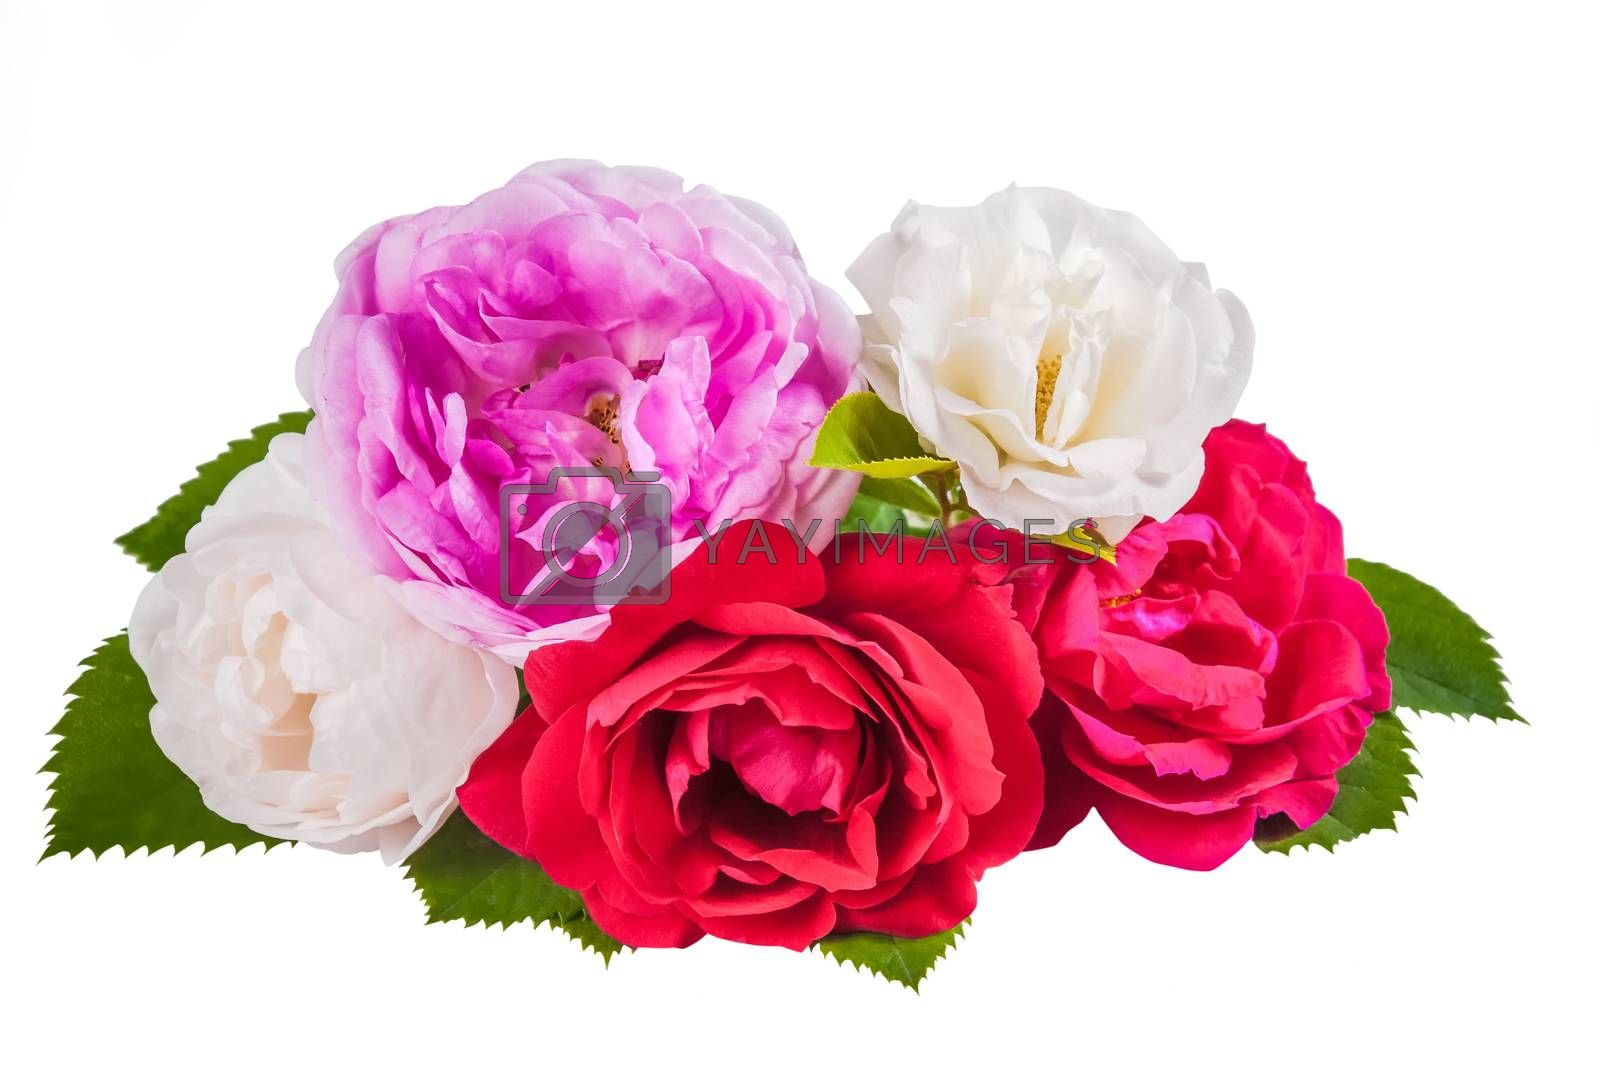 Rose colorful flowers with leaves isolated on white backround